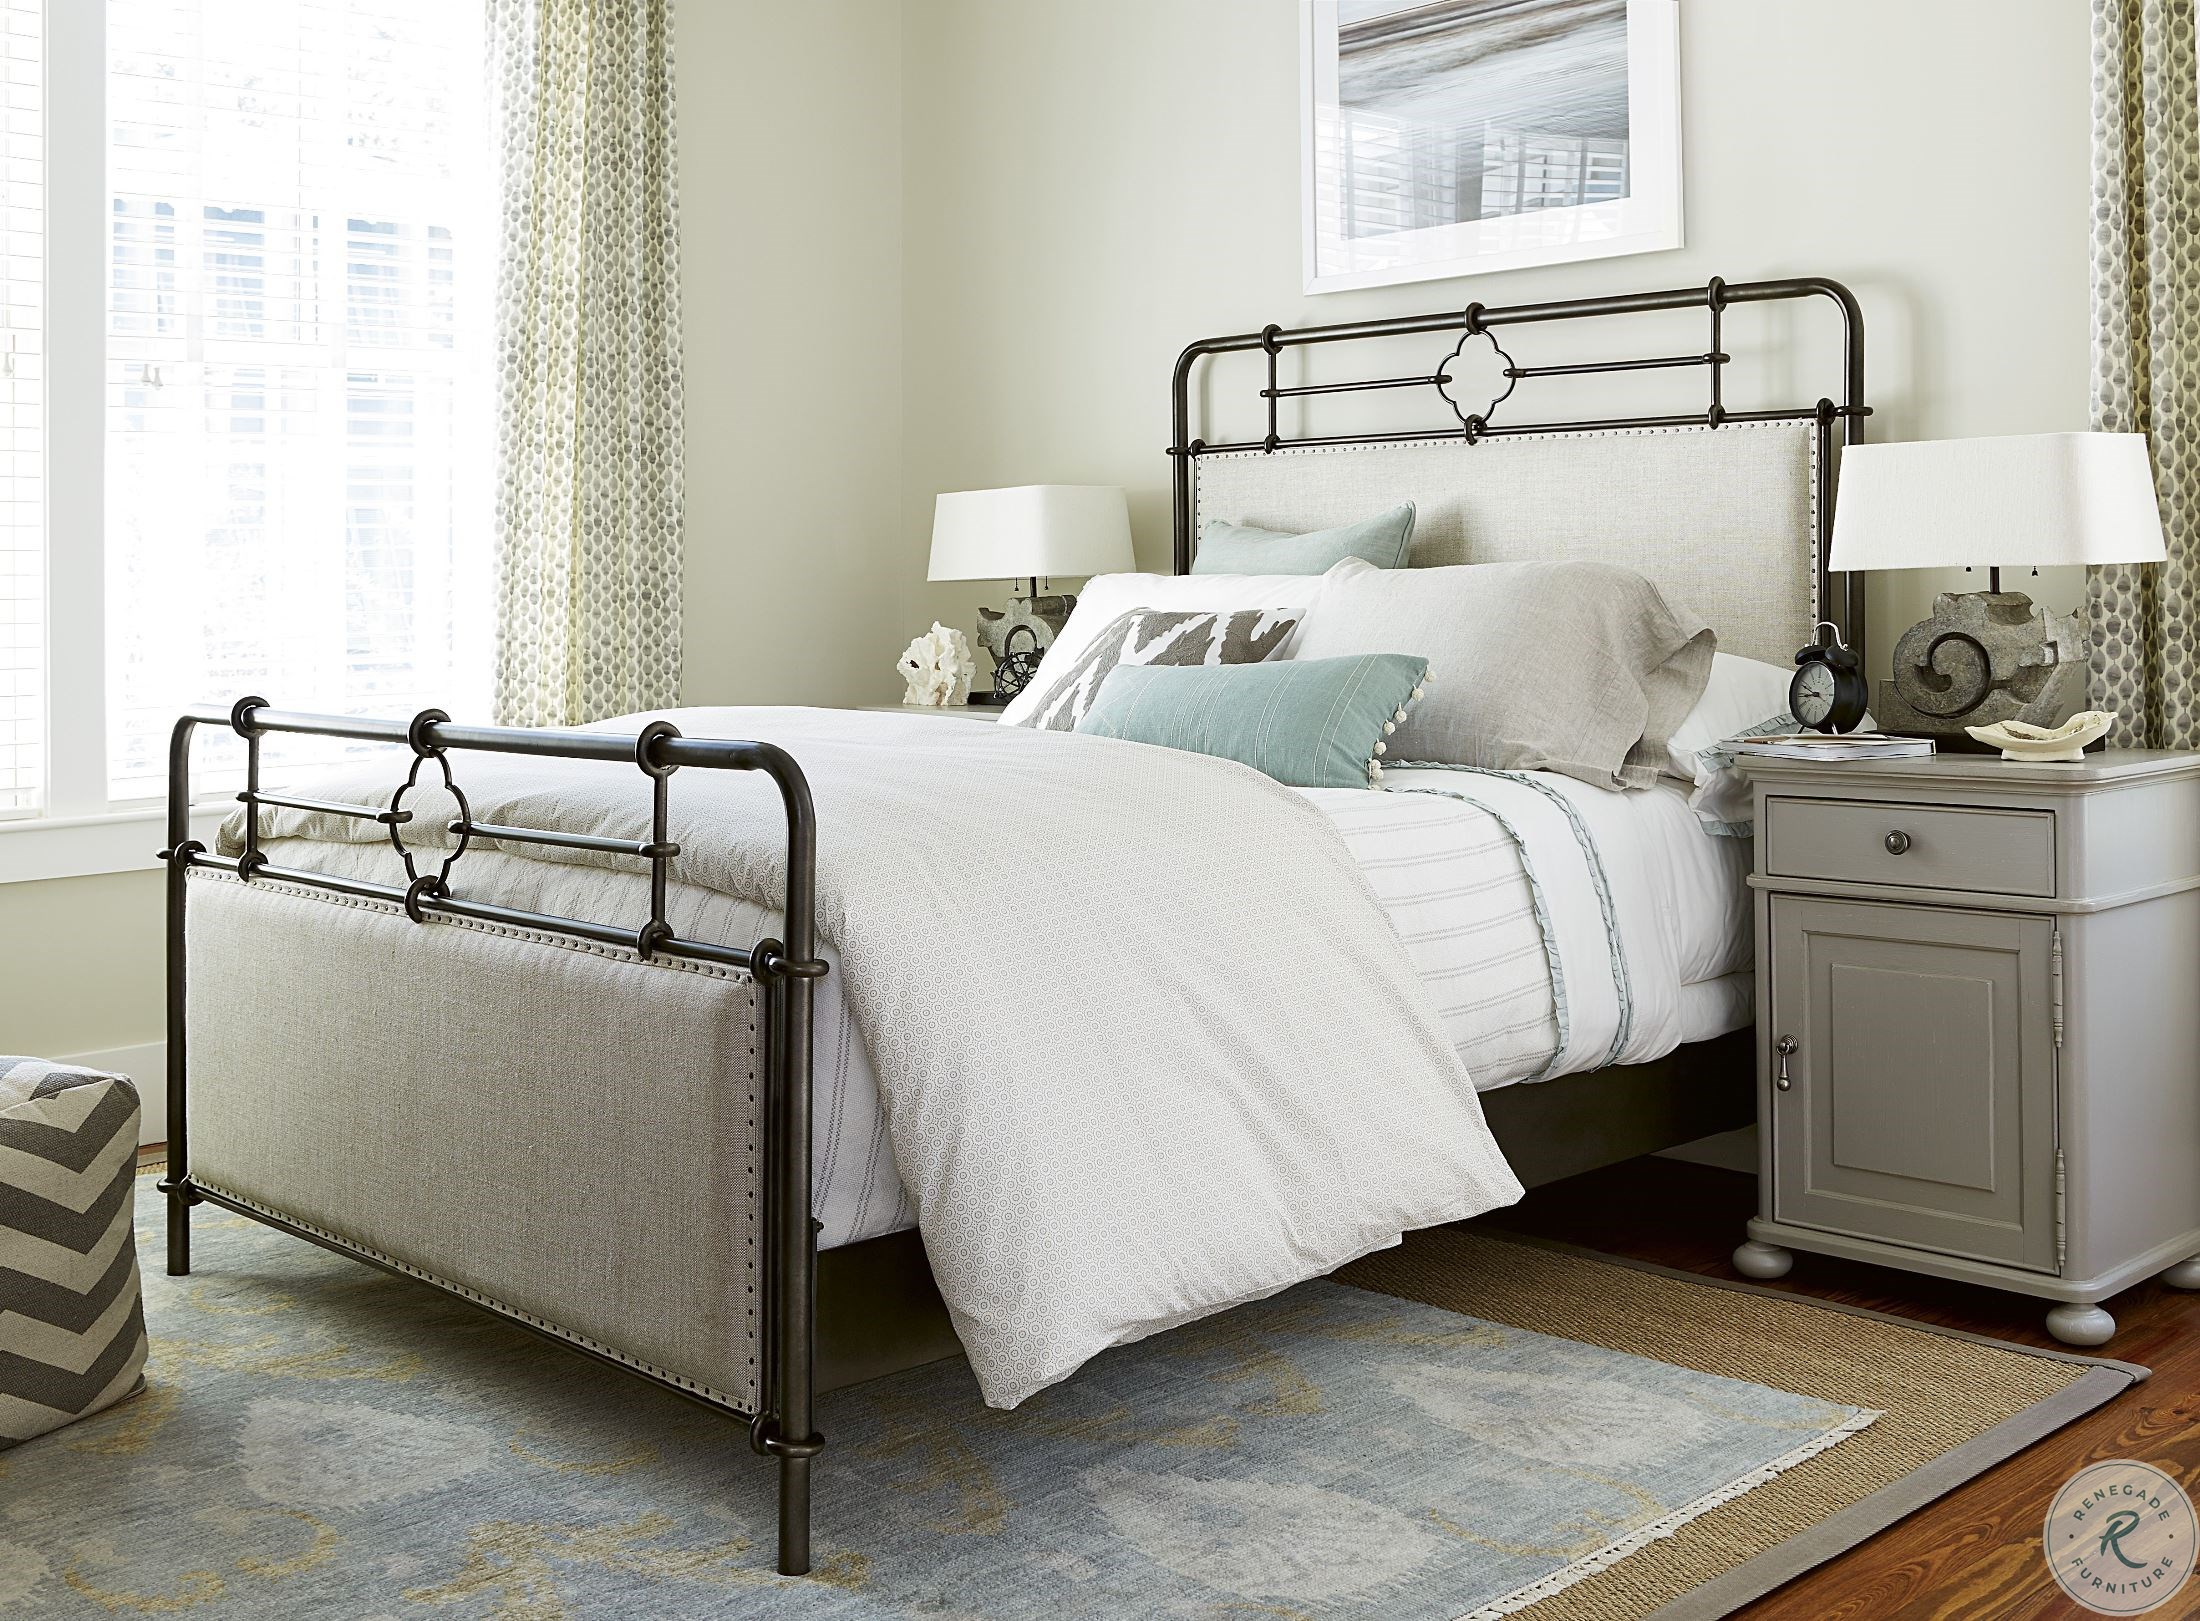 Image of: Dogwood Low Tide King Upholstered Metal Bed From Paula Deen Homegallerystore Com 596320b